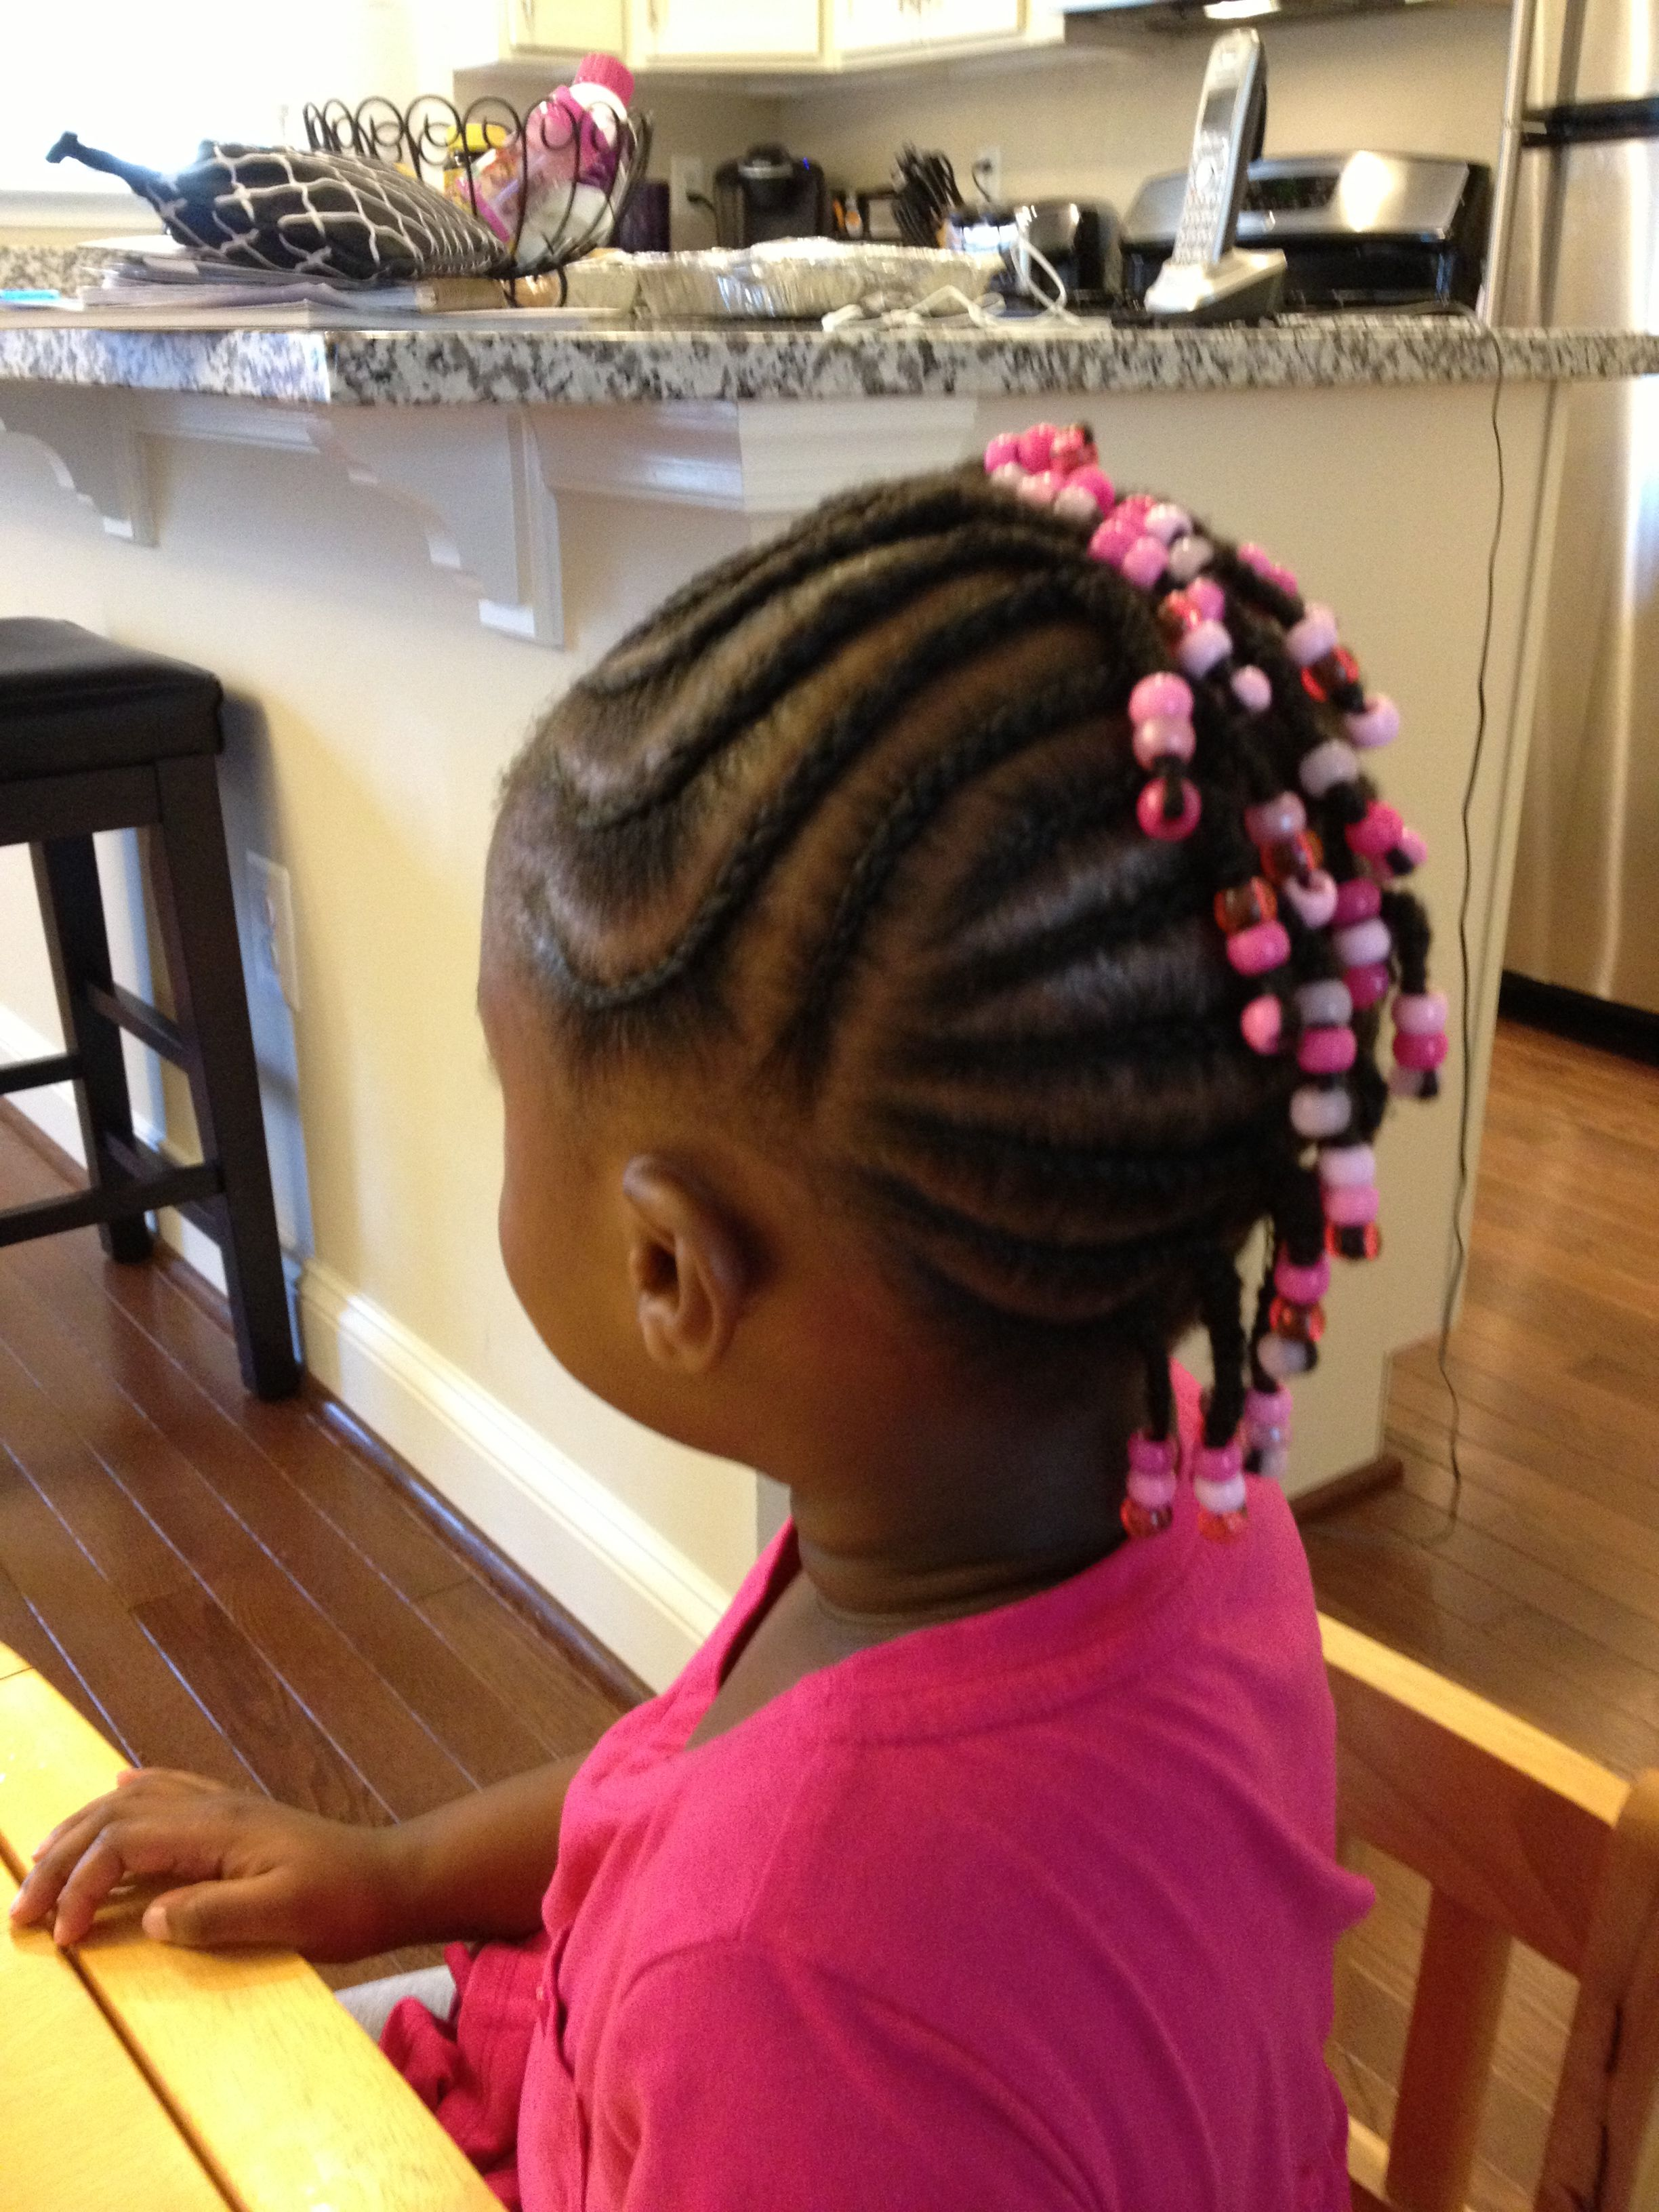 Pin By Heidi James On Cute Hairstyles For Kids Girls Hairstyles Braids Kids Braided Hairstyles Kids Hairstyles